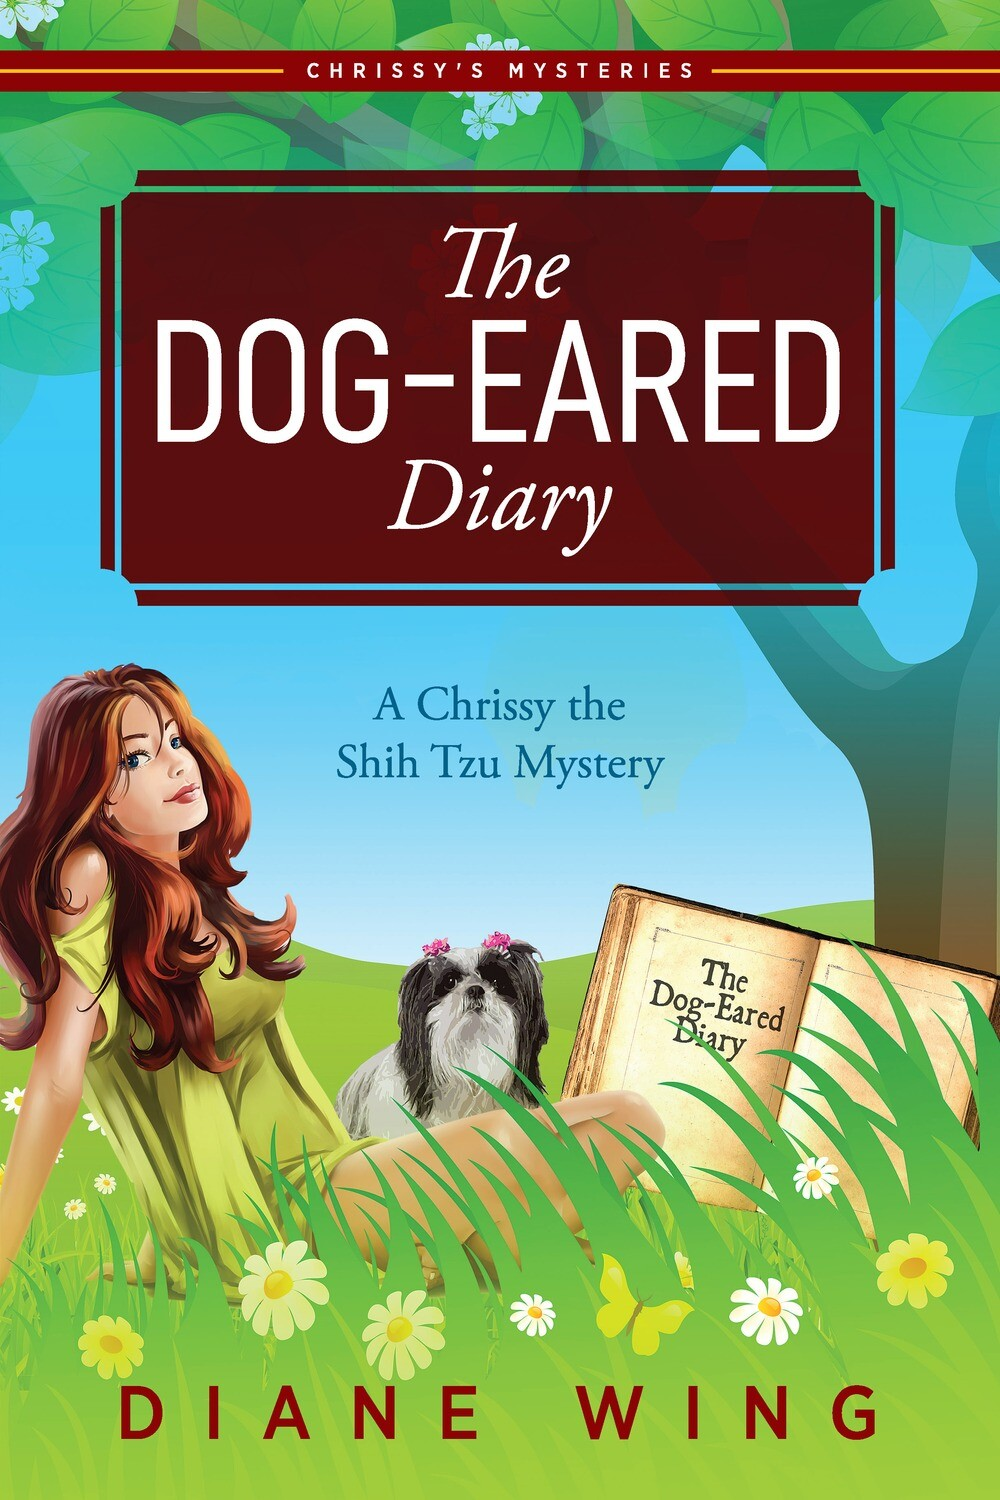 The Dog-Eared Diary